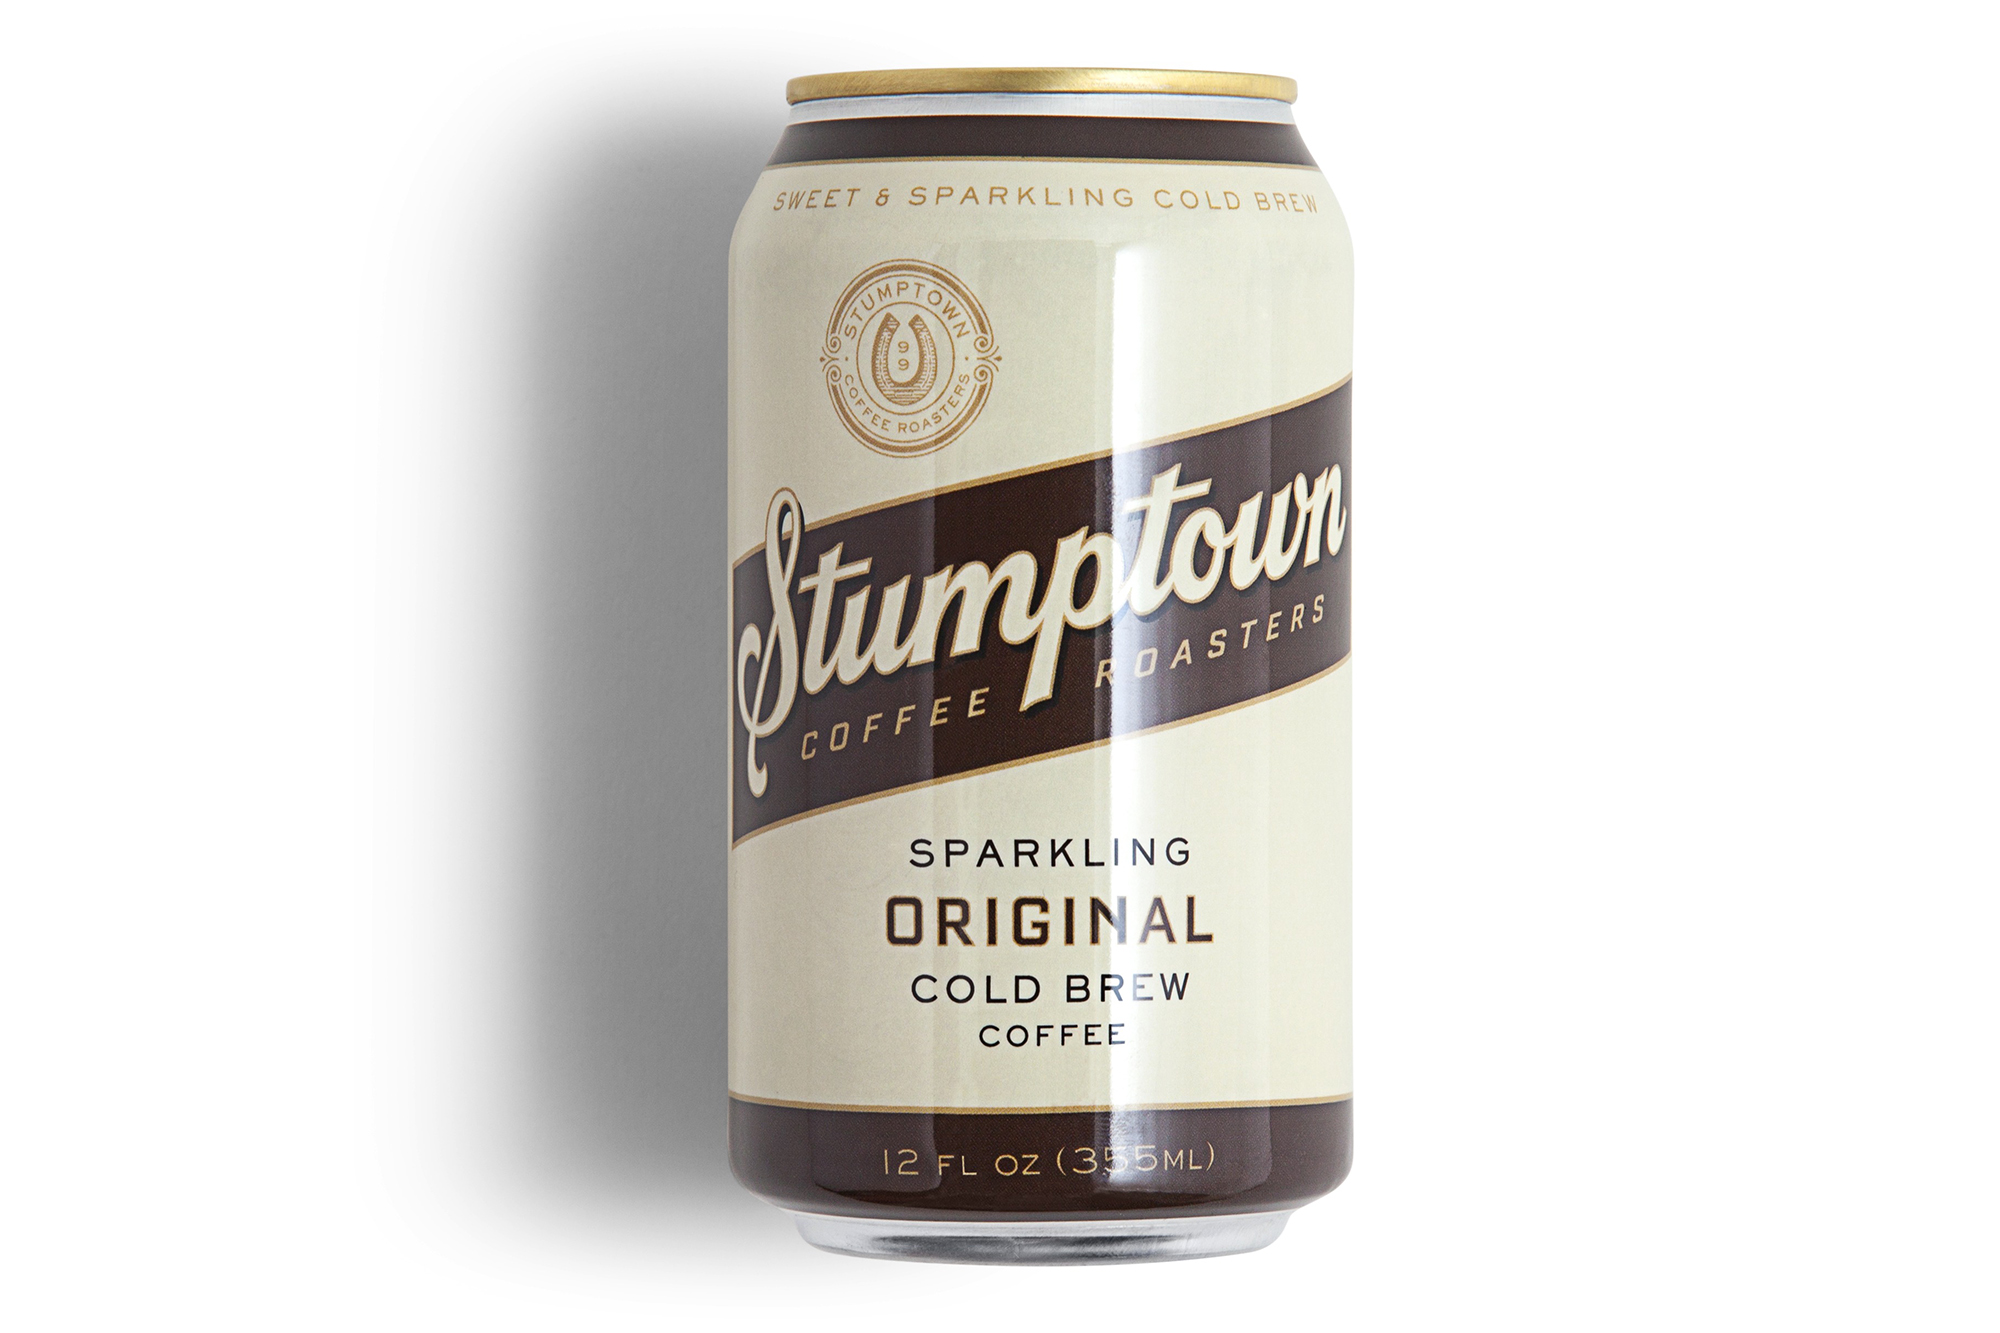 F:PHOTOReady RoomActionsInsert Request48077#stumptownOriginal - Sparkling Cold Brew - Packaging.png